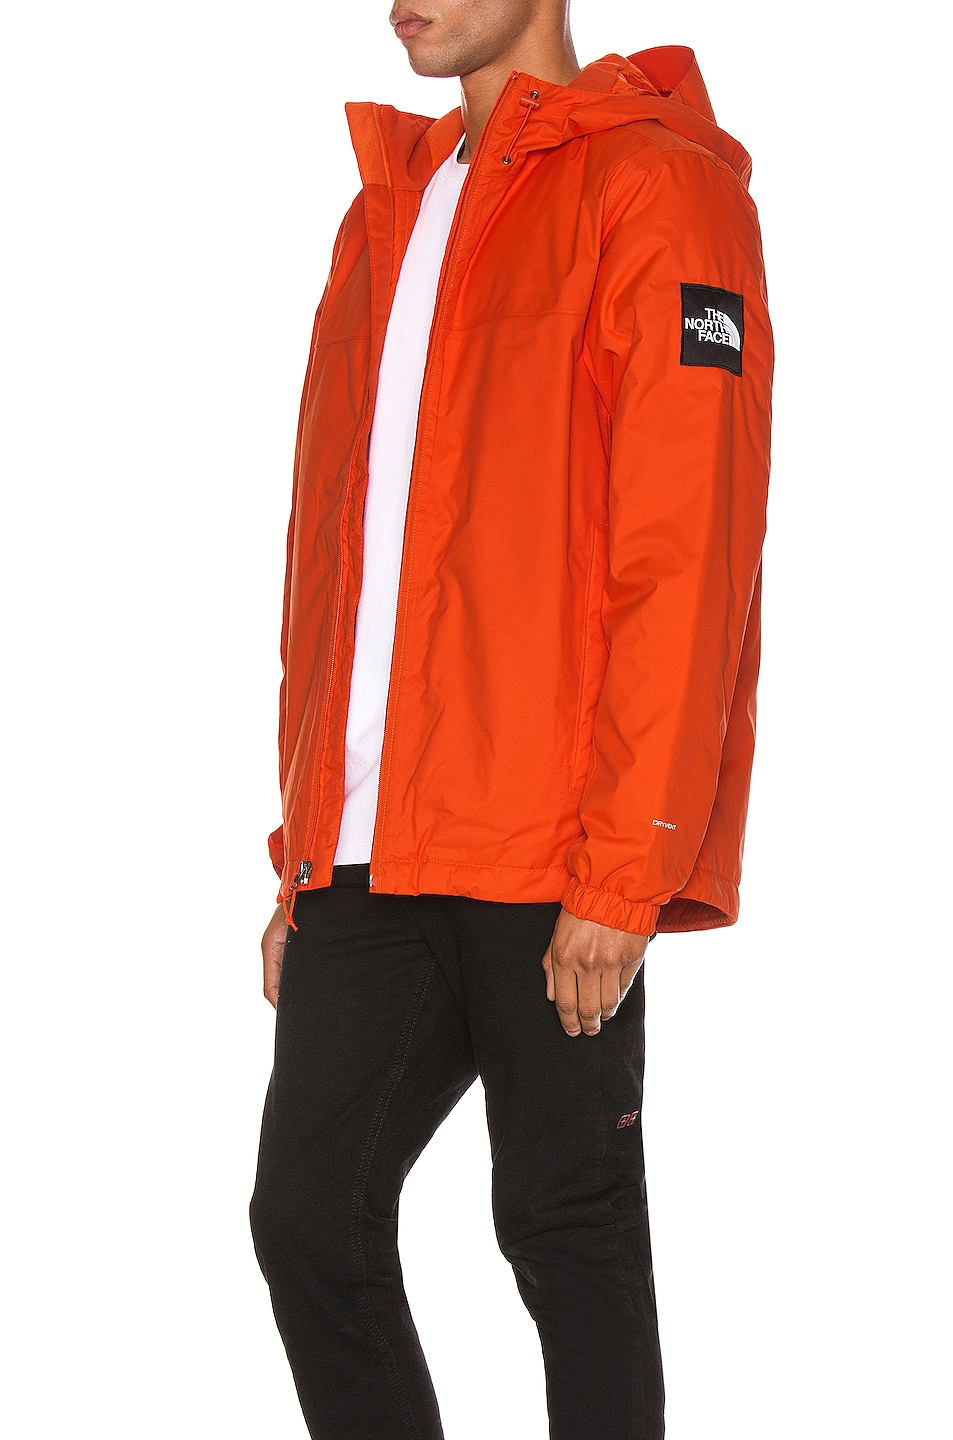 Image 1 of The North Face Black Box Ins Mountain Q Jacket in Tangerine Tango